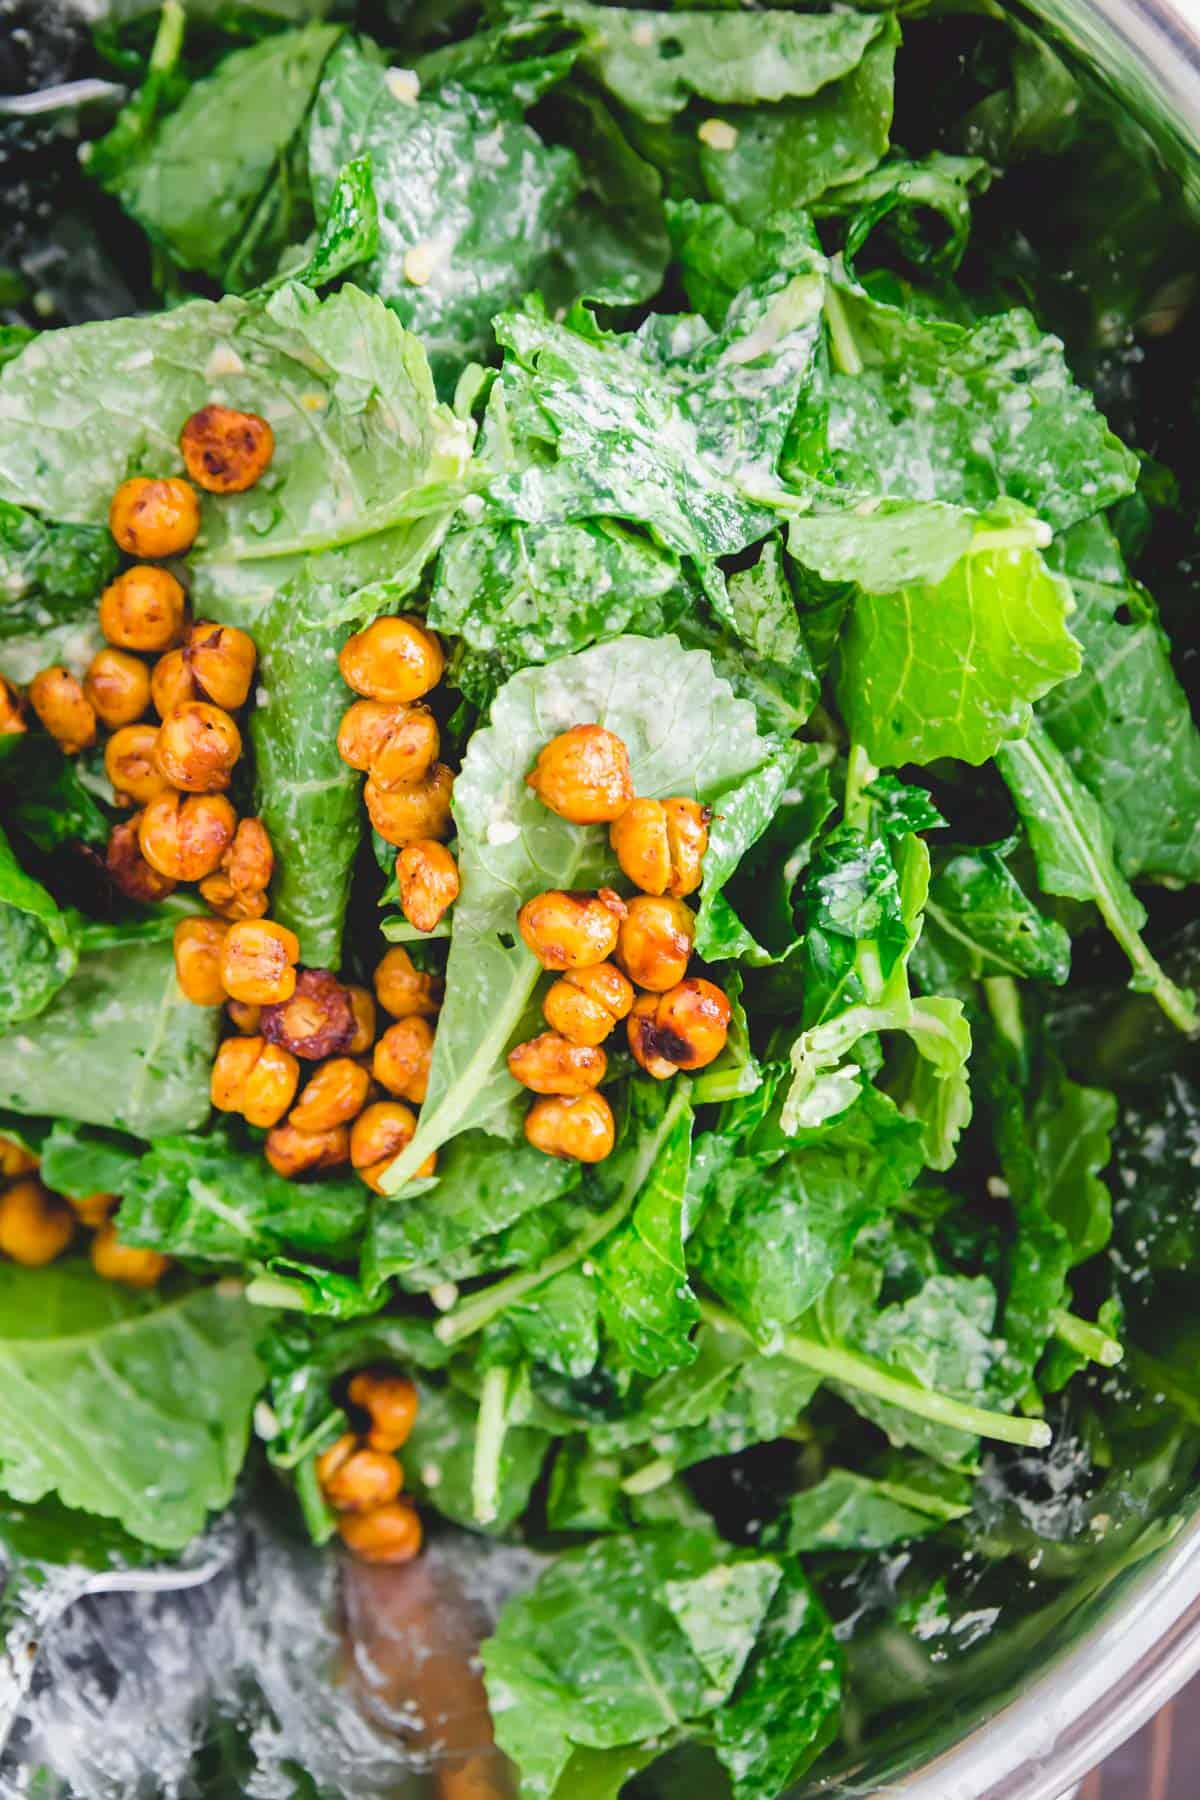 Roasted chickpeas and added to this baby kale salad for some healthy fiber packed protein.